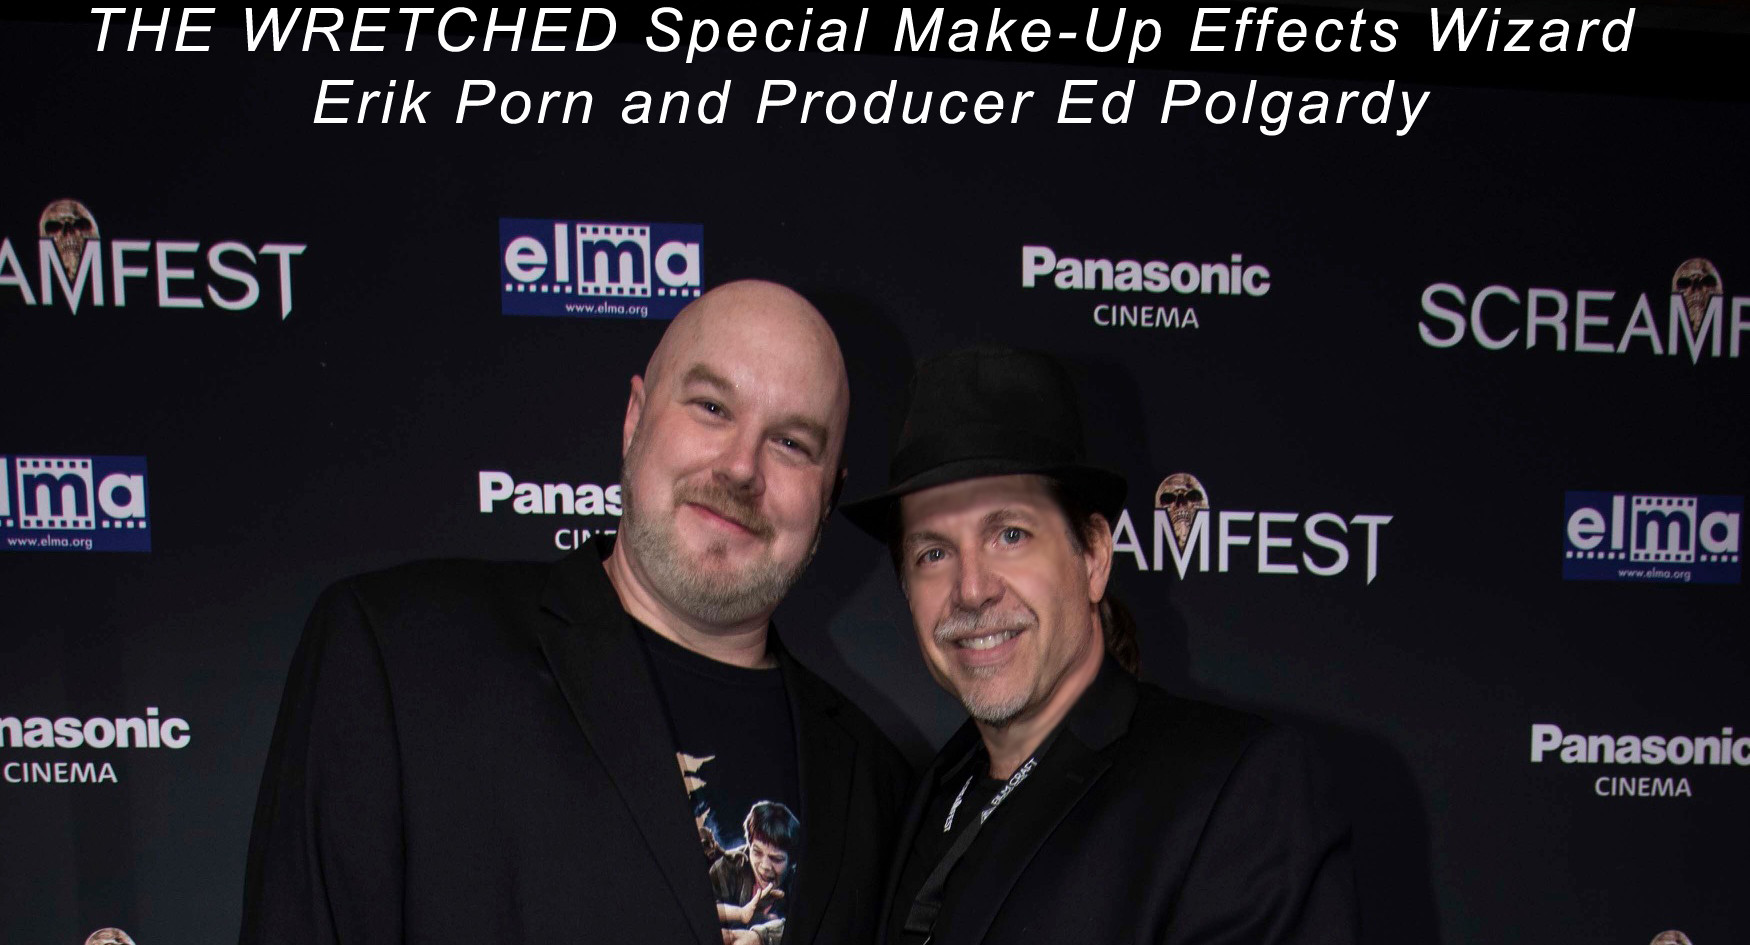 THE WRETCHED - Make-up effects wizard Erik Porn and Producer Ed Polgardy on the Screamfest red carpet.